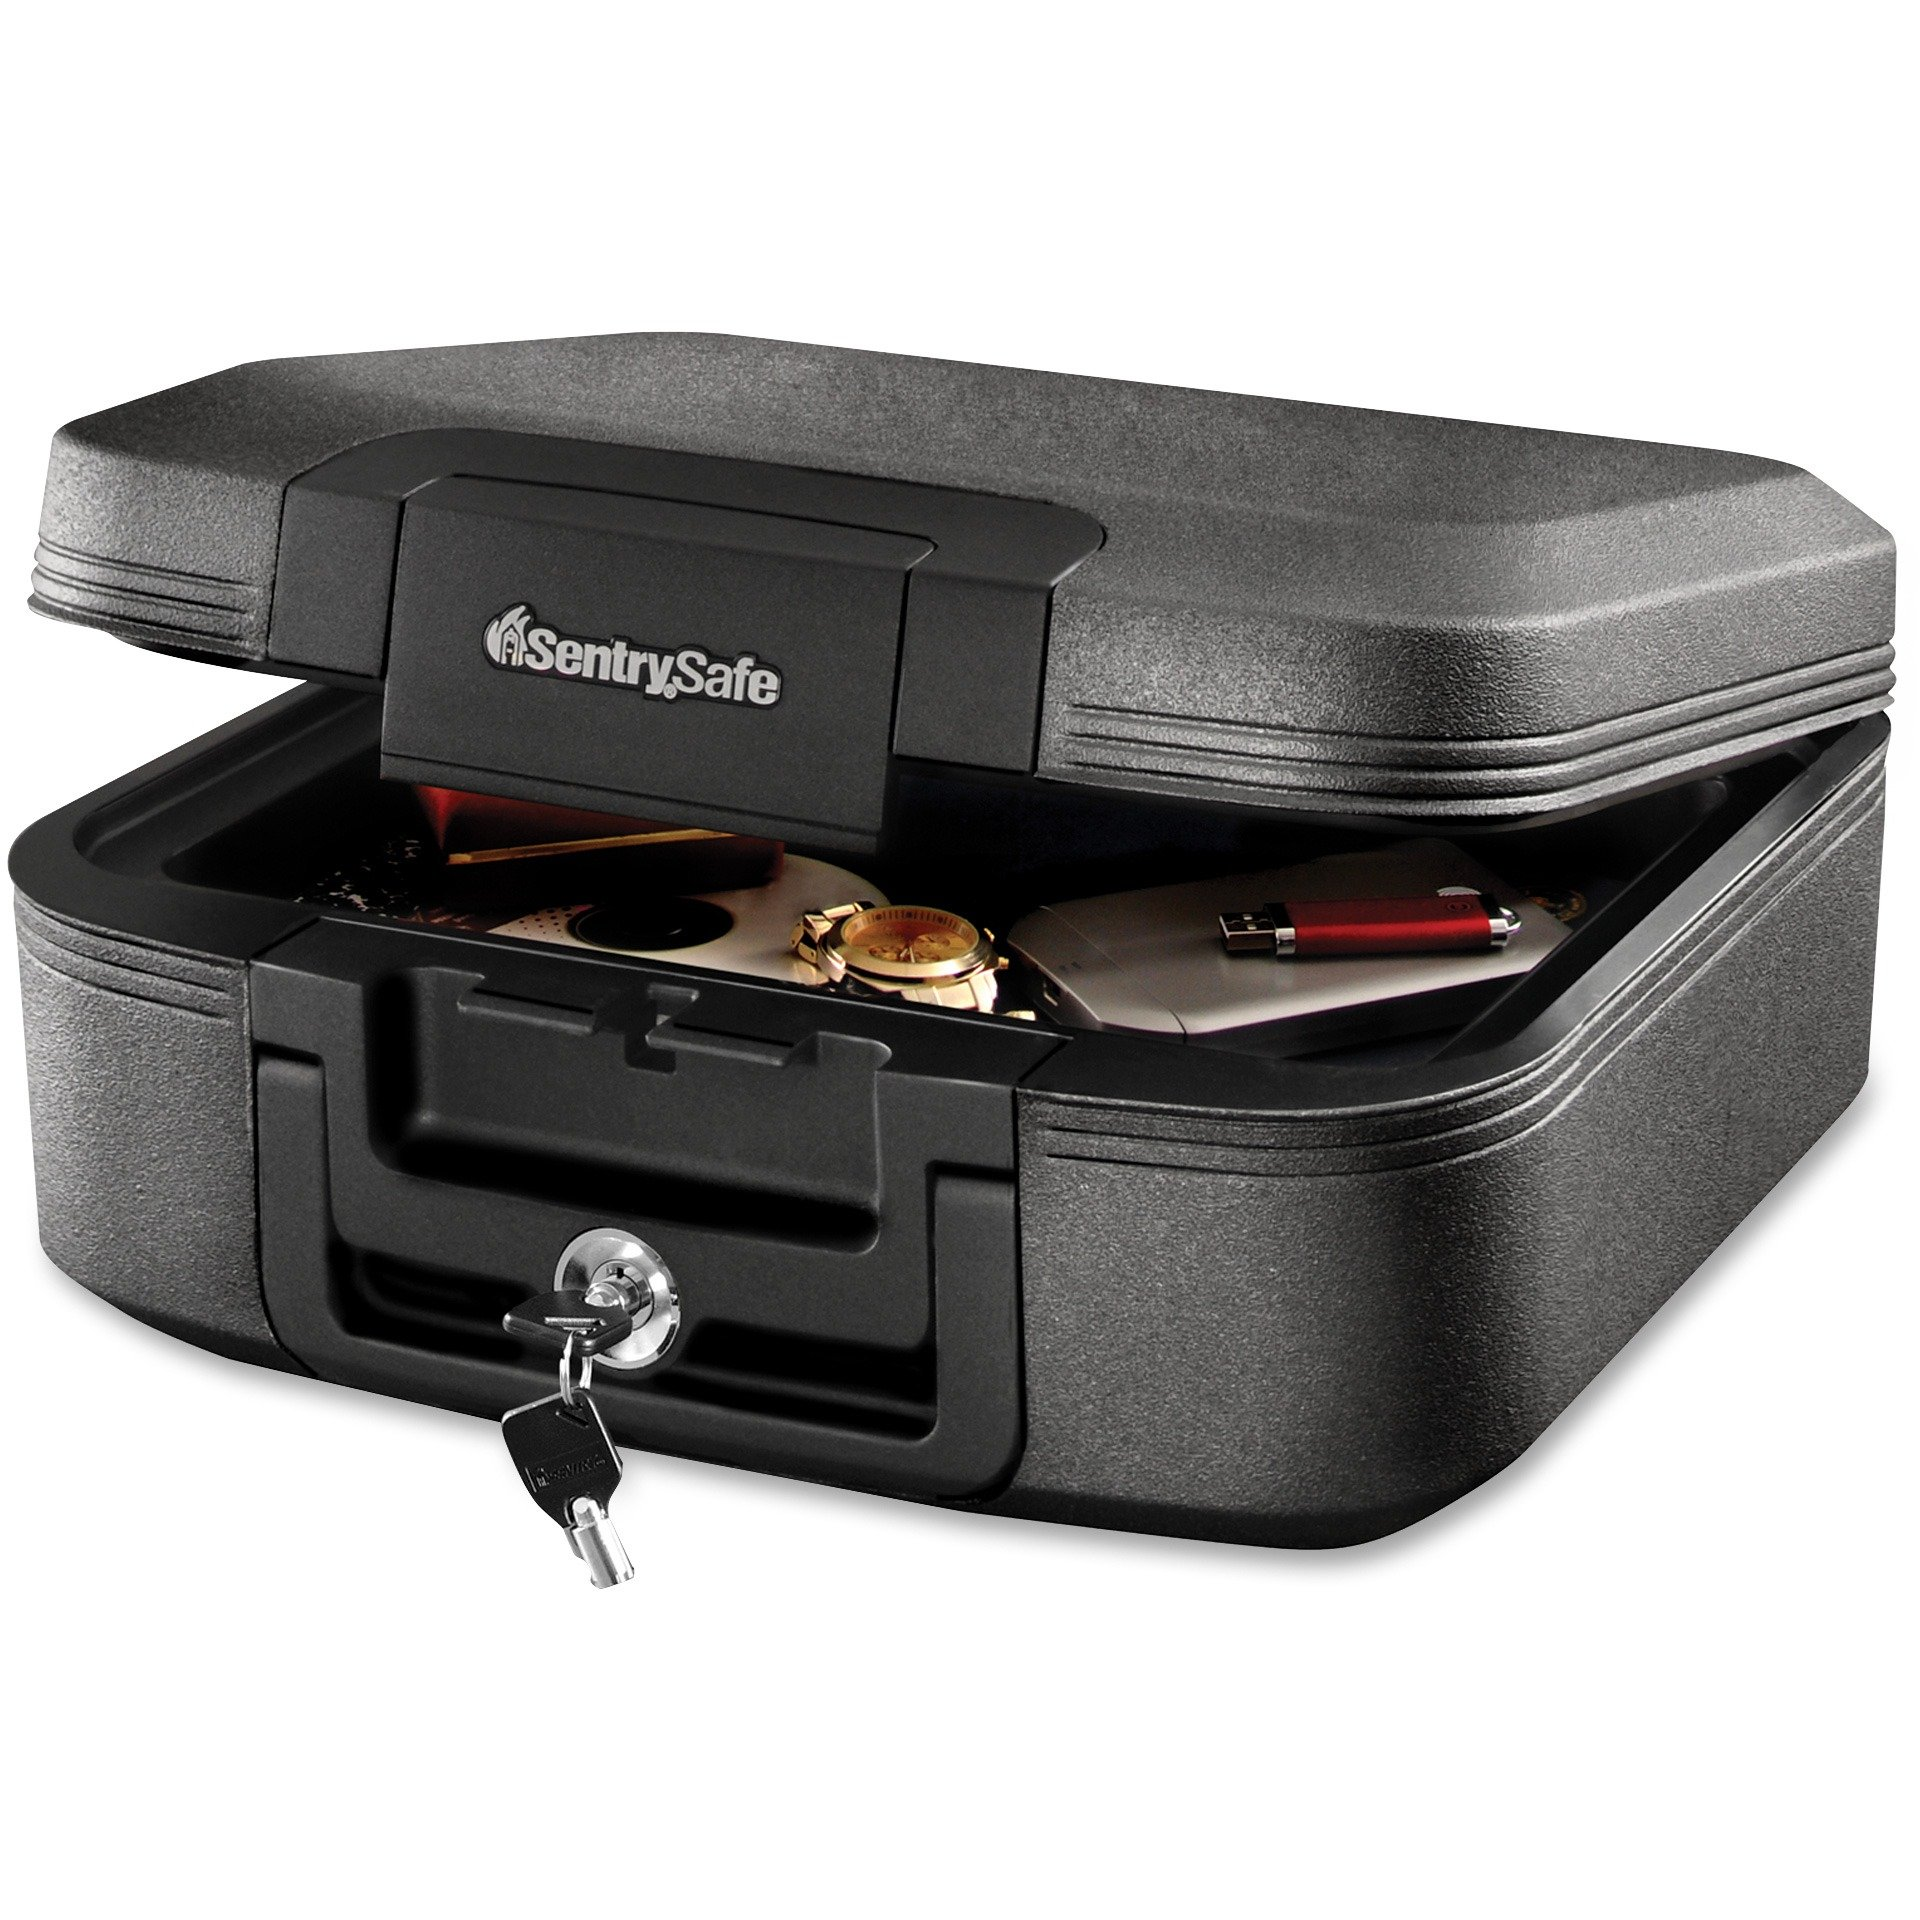 Sentry Safe CFW20201 Waterproof Fire-Resistant Medium Tubular Lock Chest, .28 cu. ft, 15 1/2 x 14 3/8 x 6 5/8-Inches, Charcoal Gray